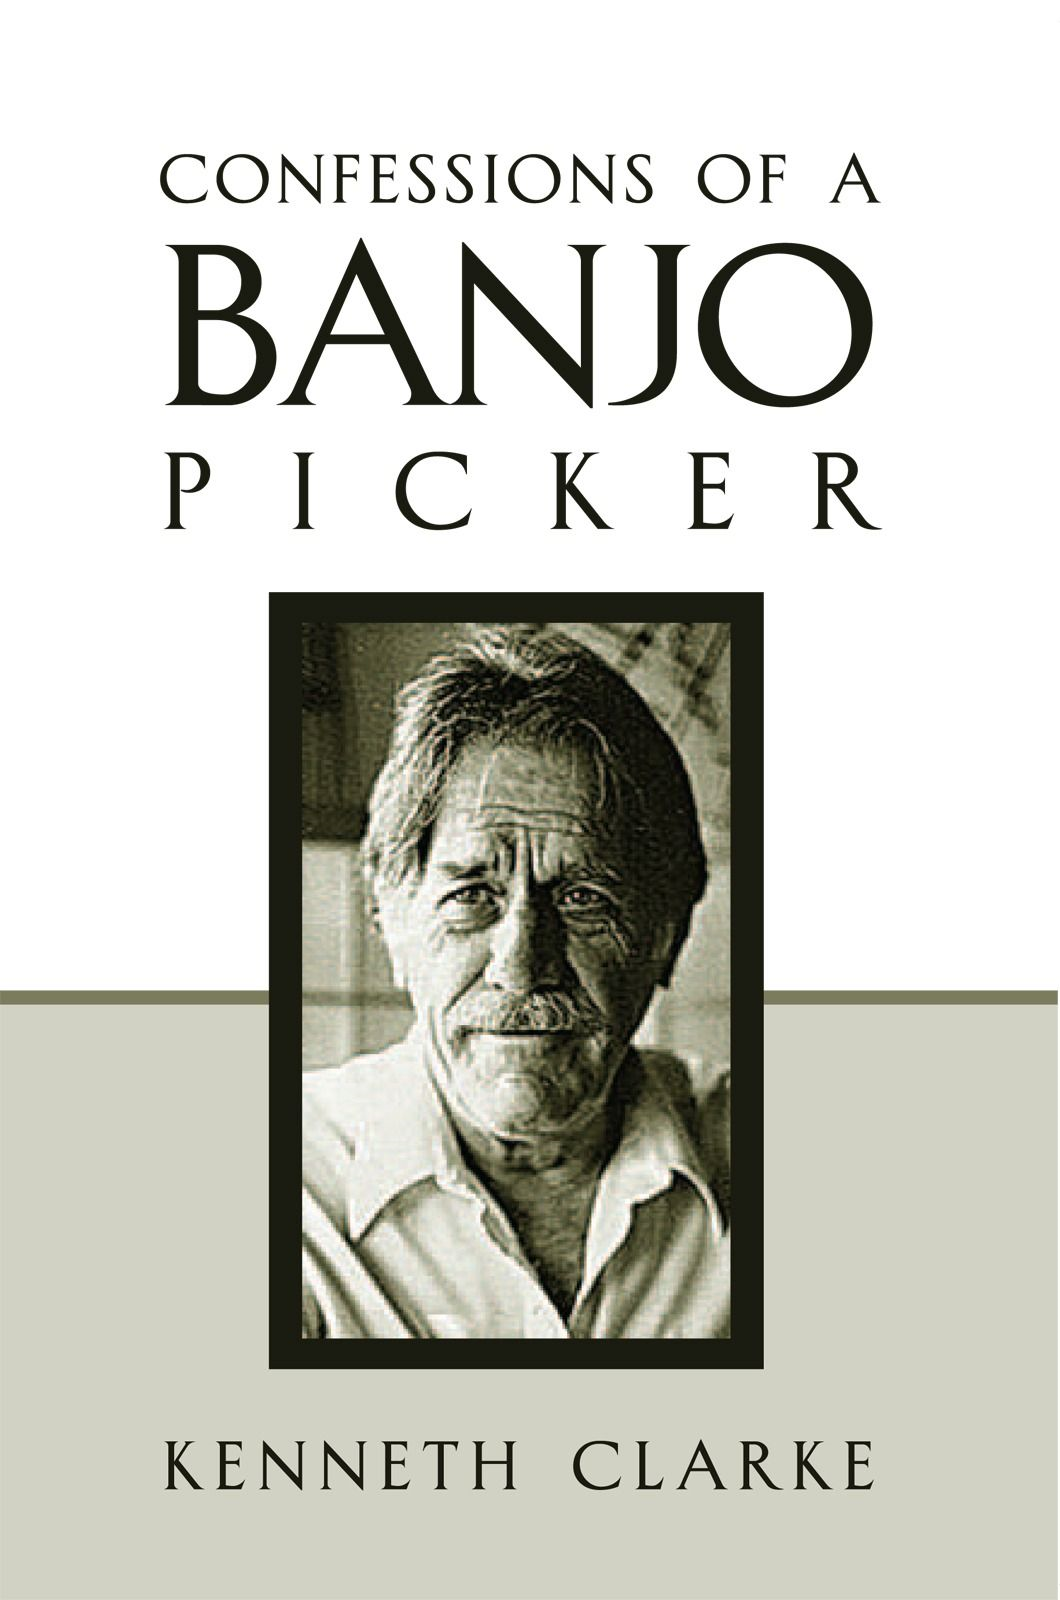 CONFESSIONS OF A BANJO PICKER